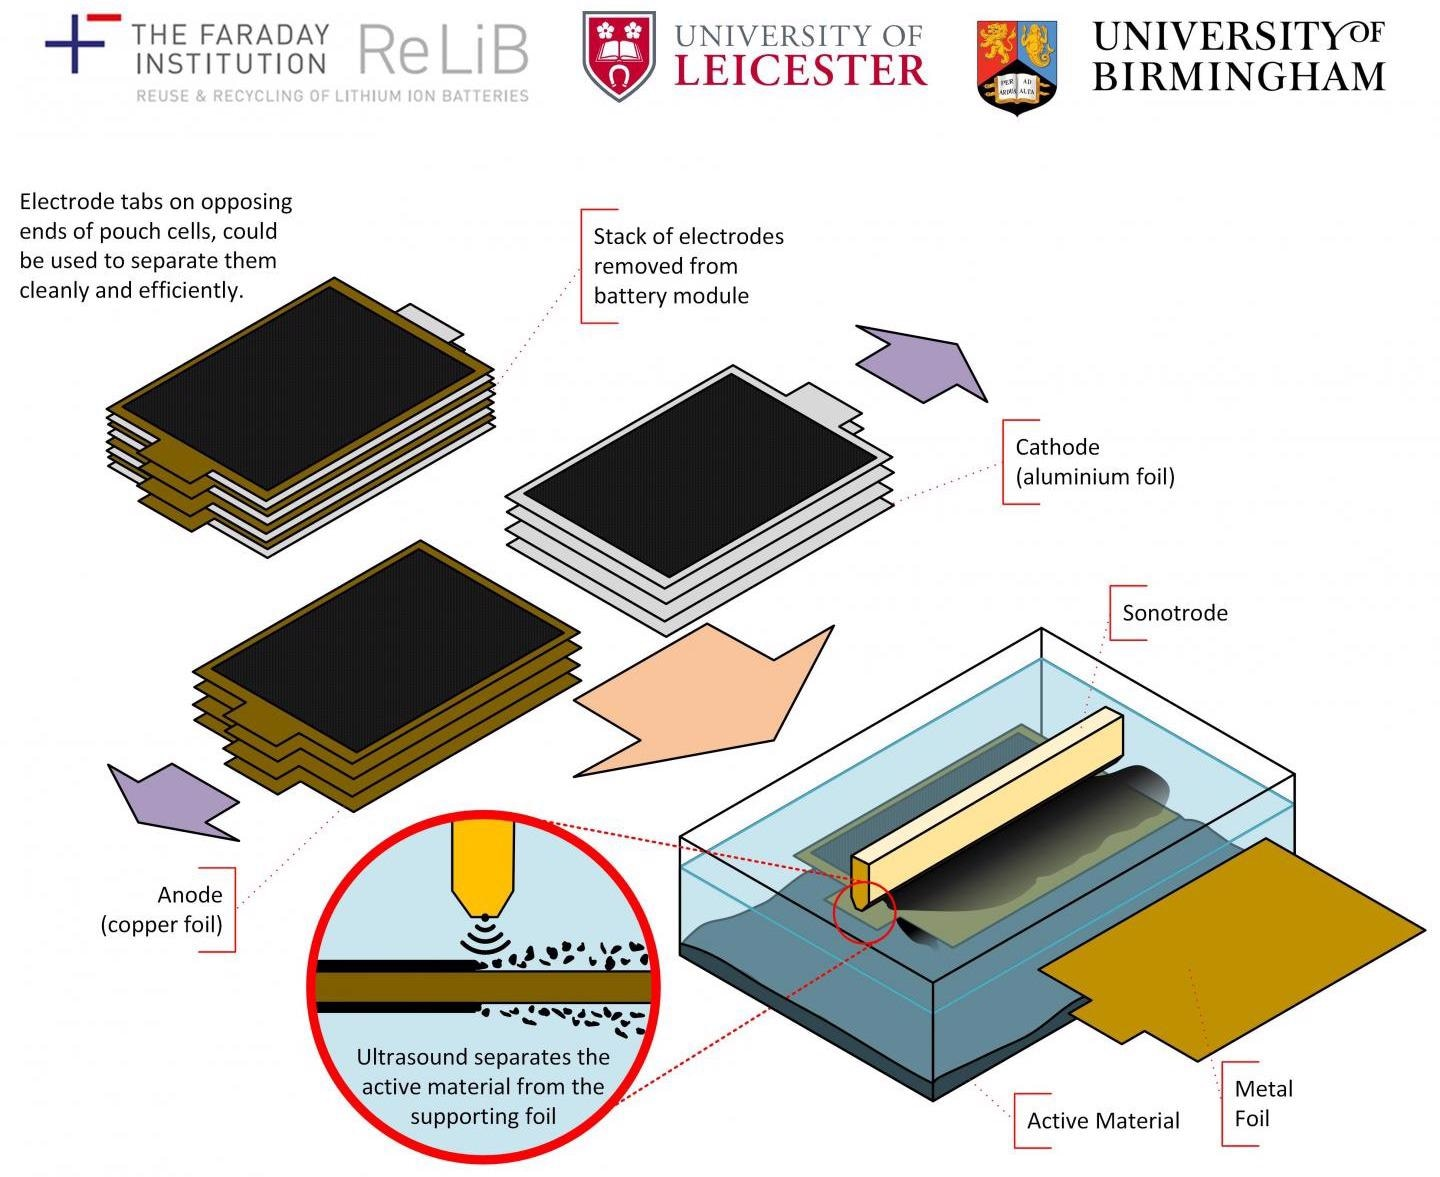 Ground-Breaking Approach to Recycle Electric Vehicle Batteries.